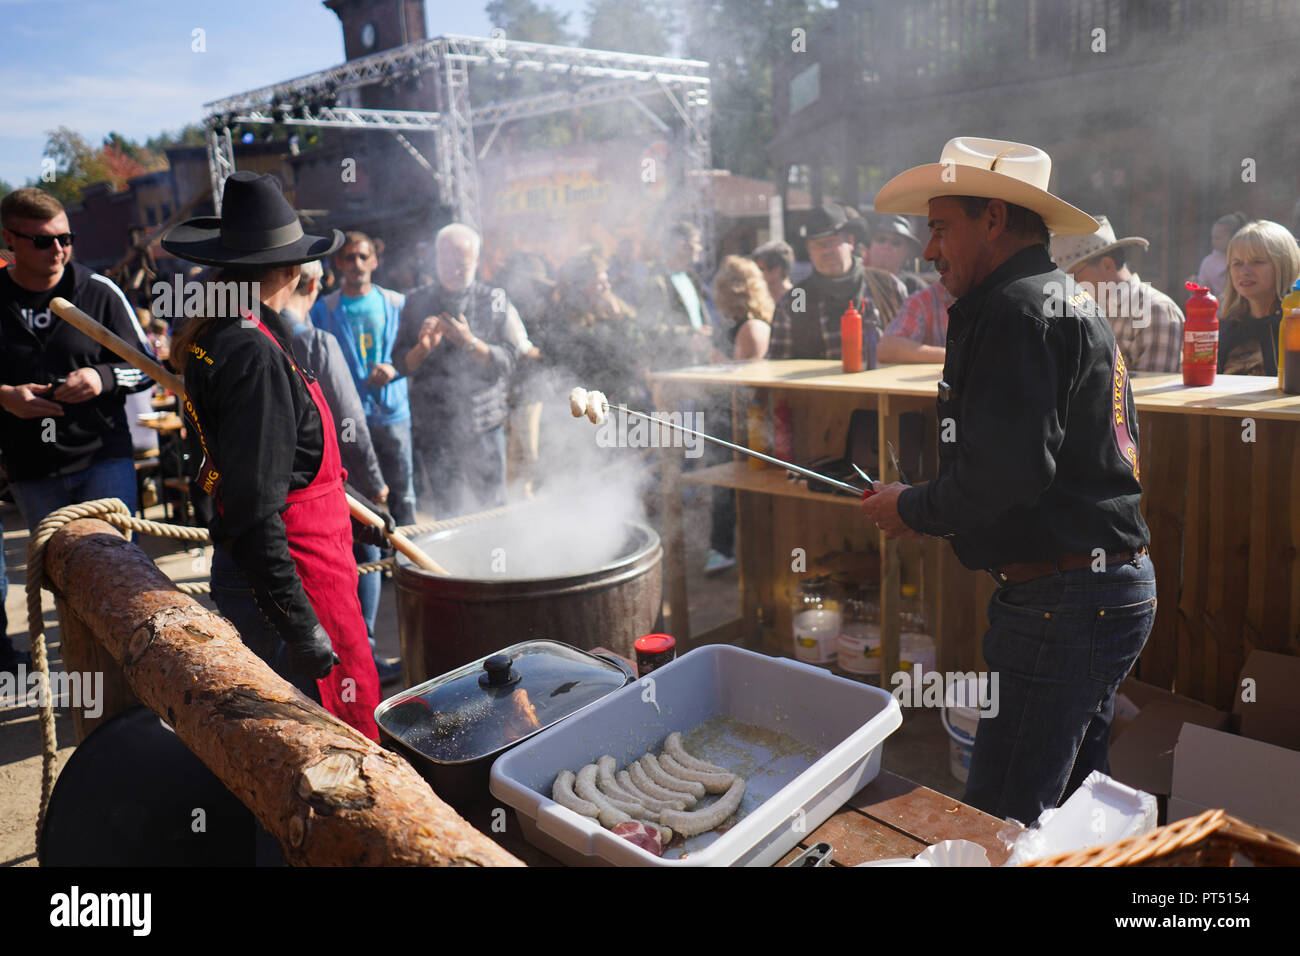 Templin, Brandenburg. 06th Oct, 2018. 06 October 2018, Germany, Templin: For the 'strengthening' of the visitors there is sausage from the Fondue pot in the context of the first 'Brandenburgischen grill championship' in the 'El Dorado Templin'. A total of eight teams grill for the grill crown. Credit: Jörg Carstensen/dpa/Alamy Live News - Stock Image